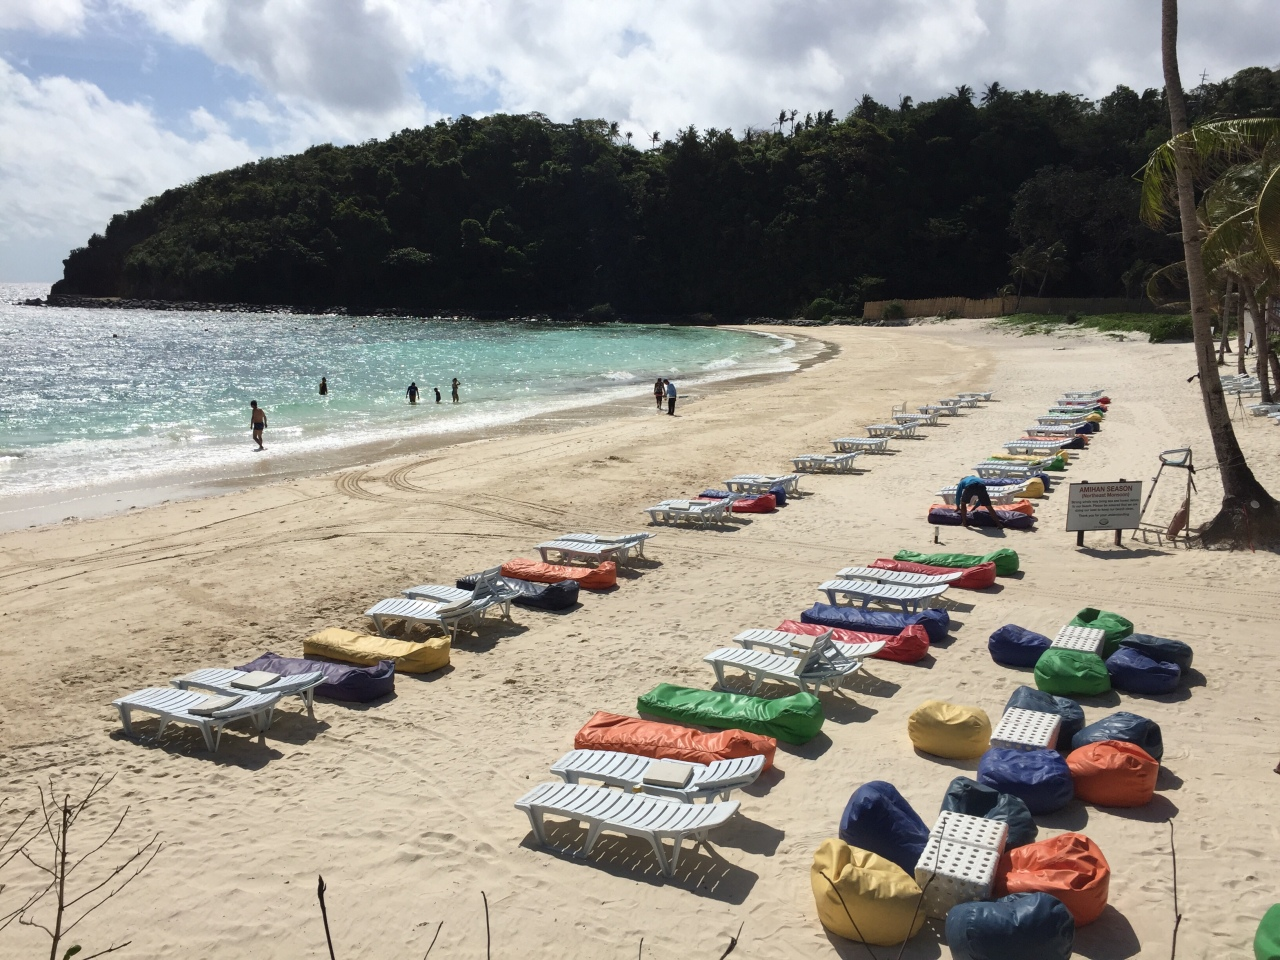 Private beach lounge chairs